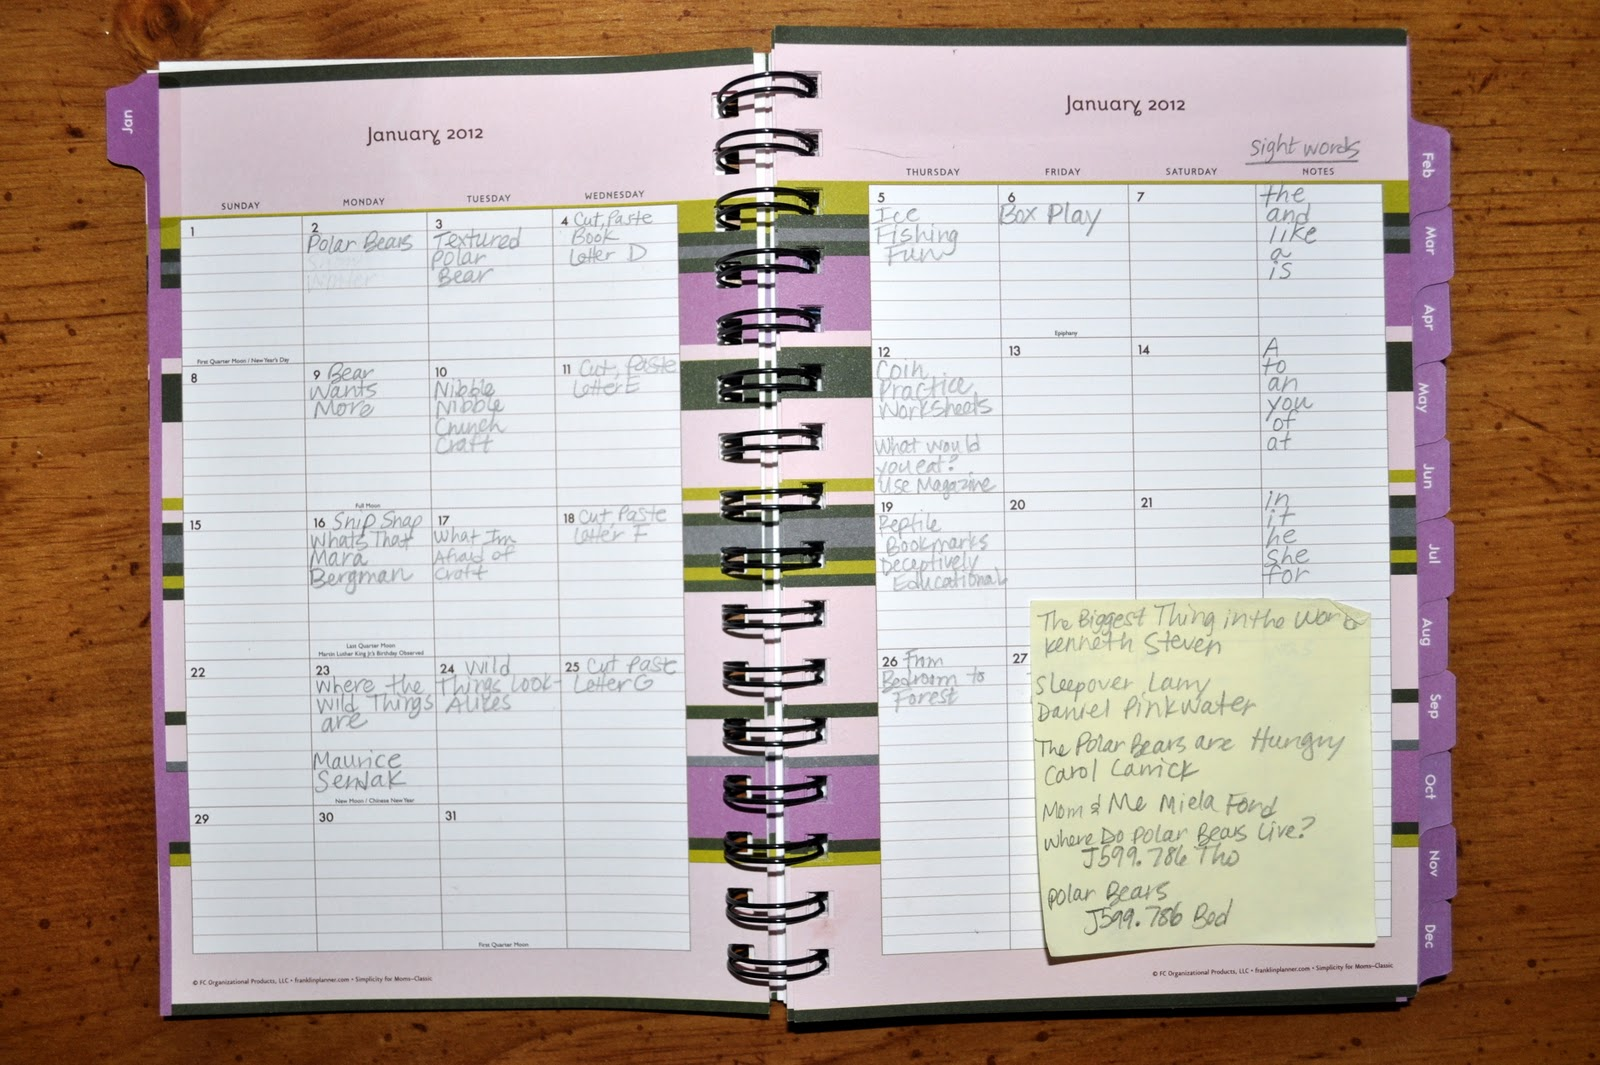 Day 7 Weekly Planner Template Franklin Covey